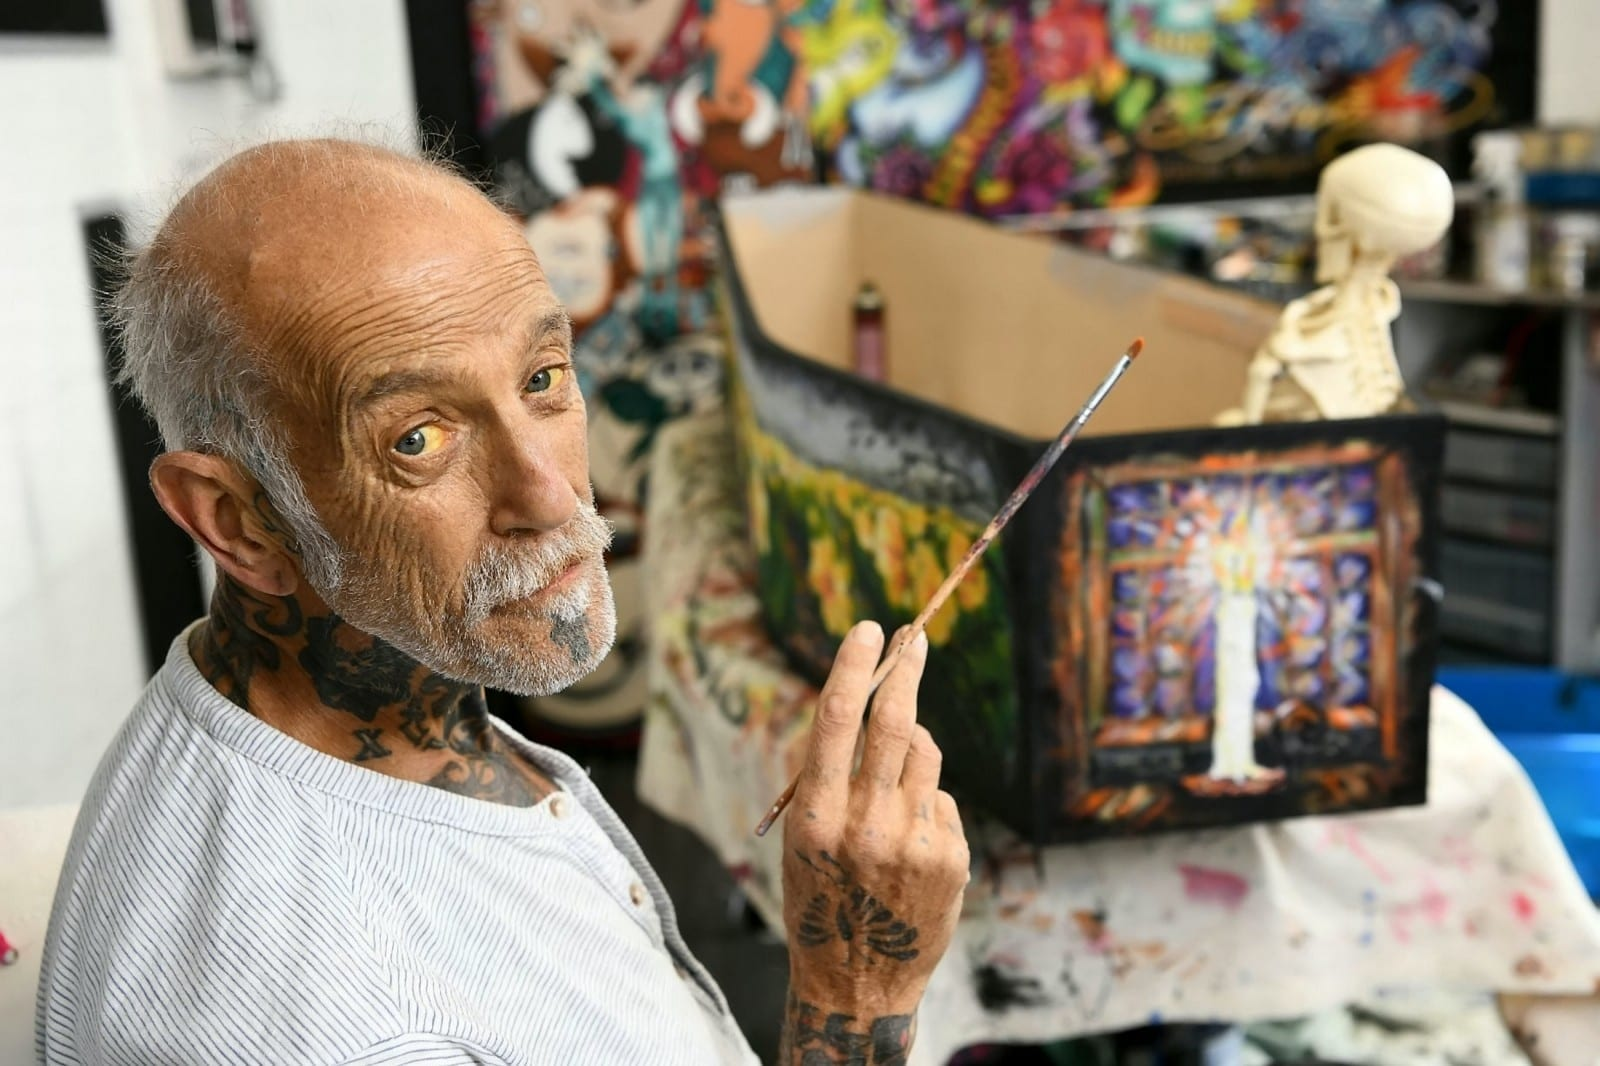 Tattoo Artist Dying Of Cancer Paints His Life Story - On His Own COFFIN